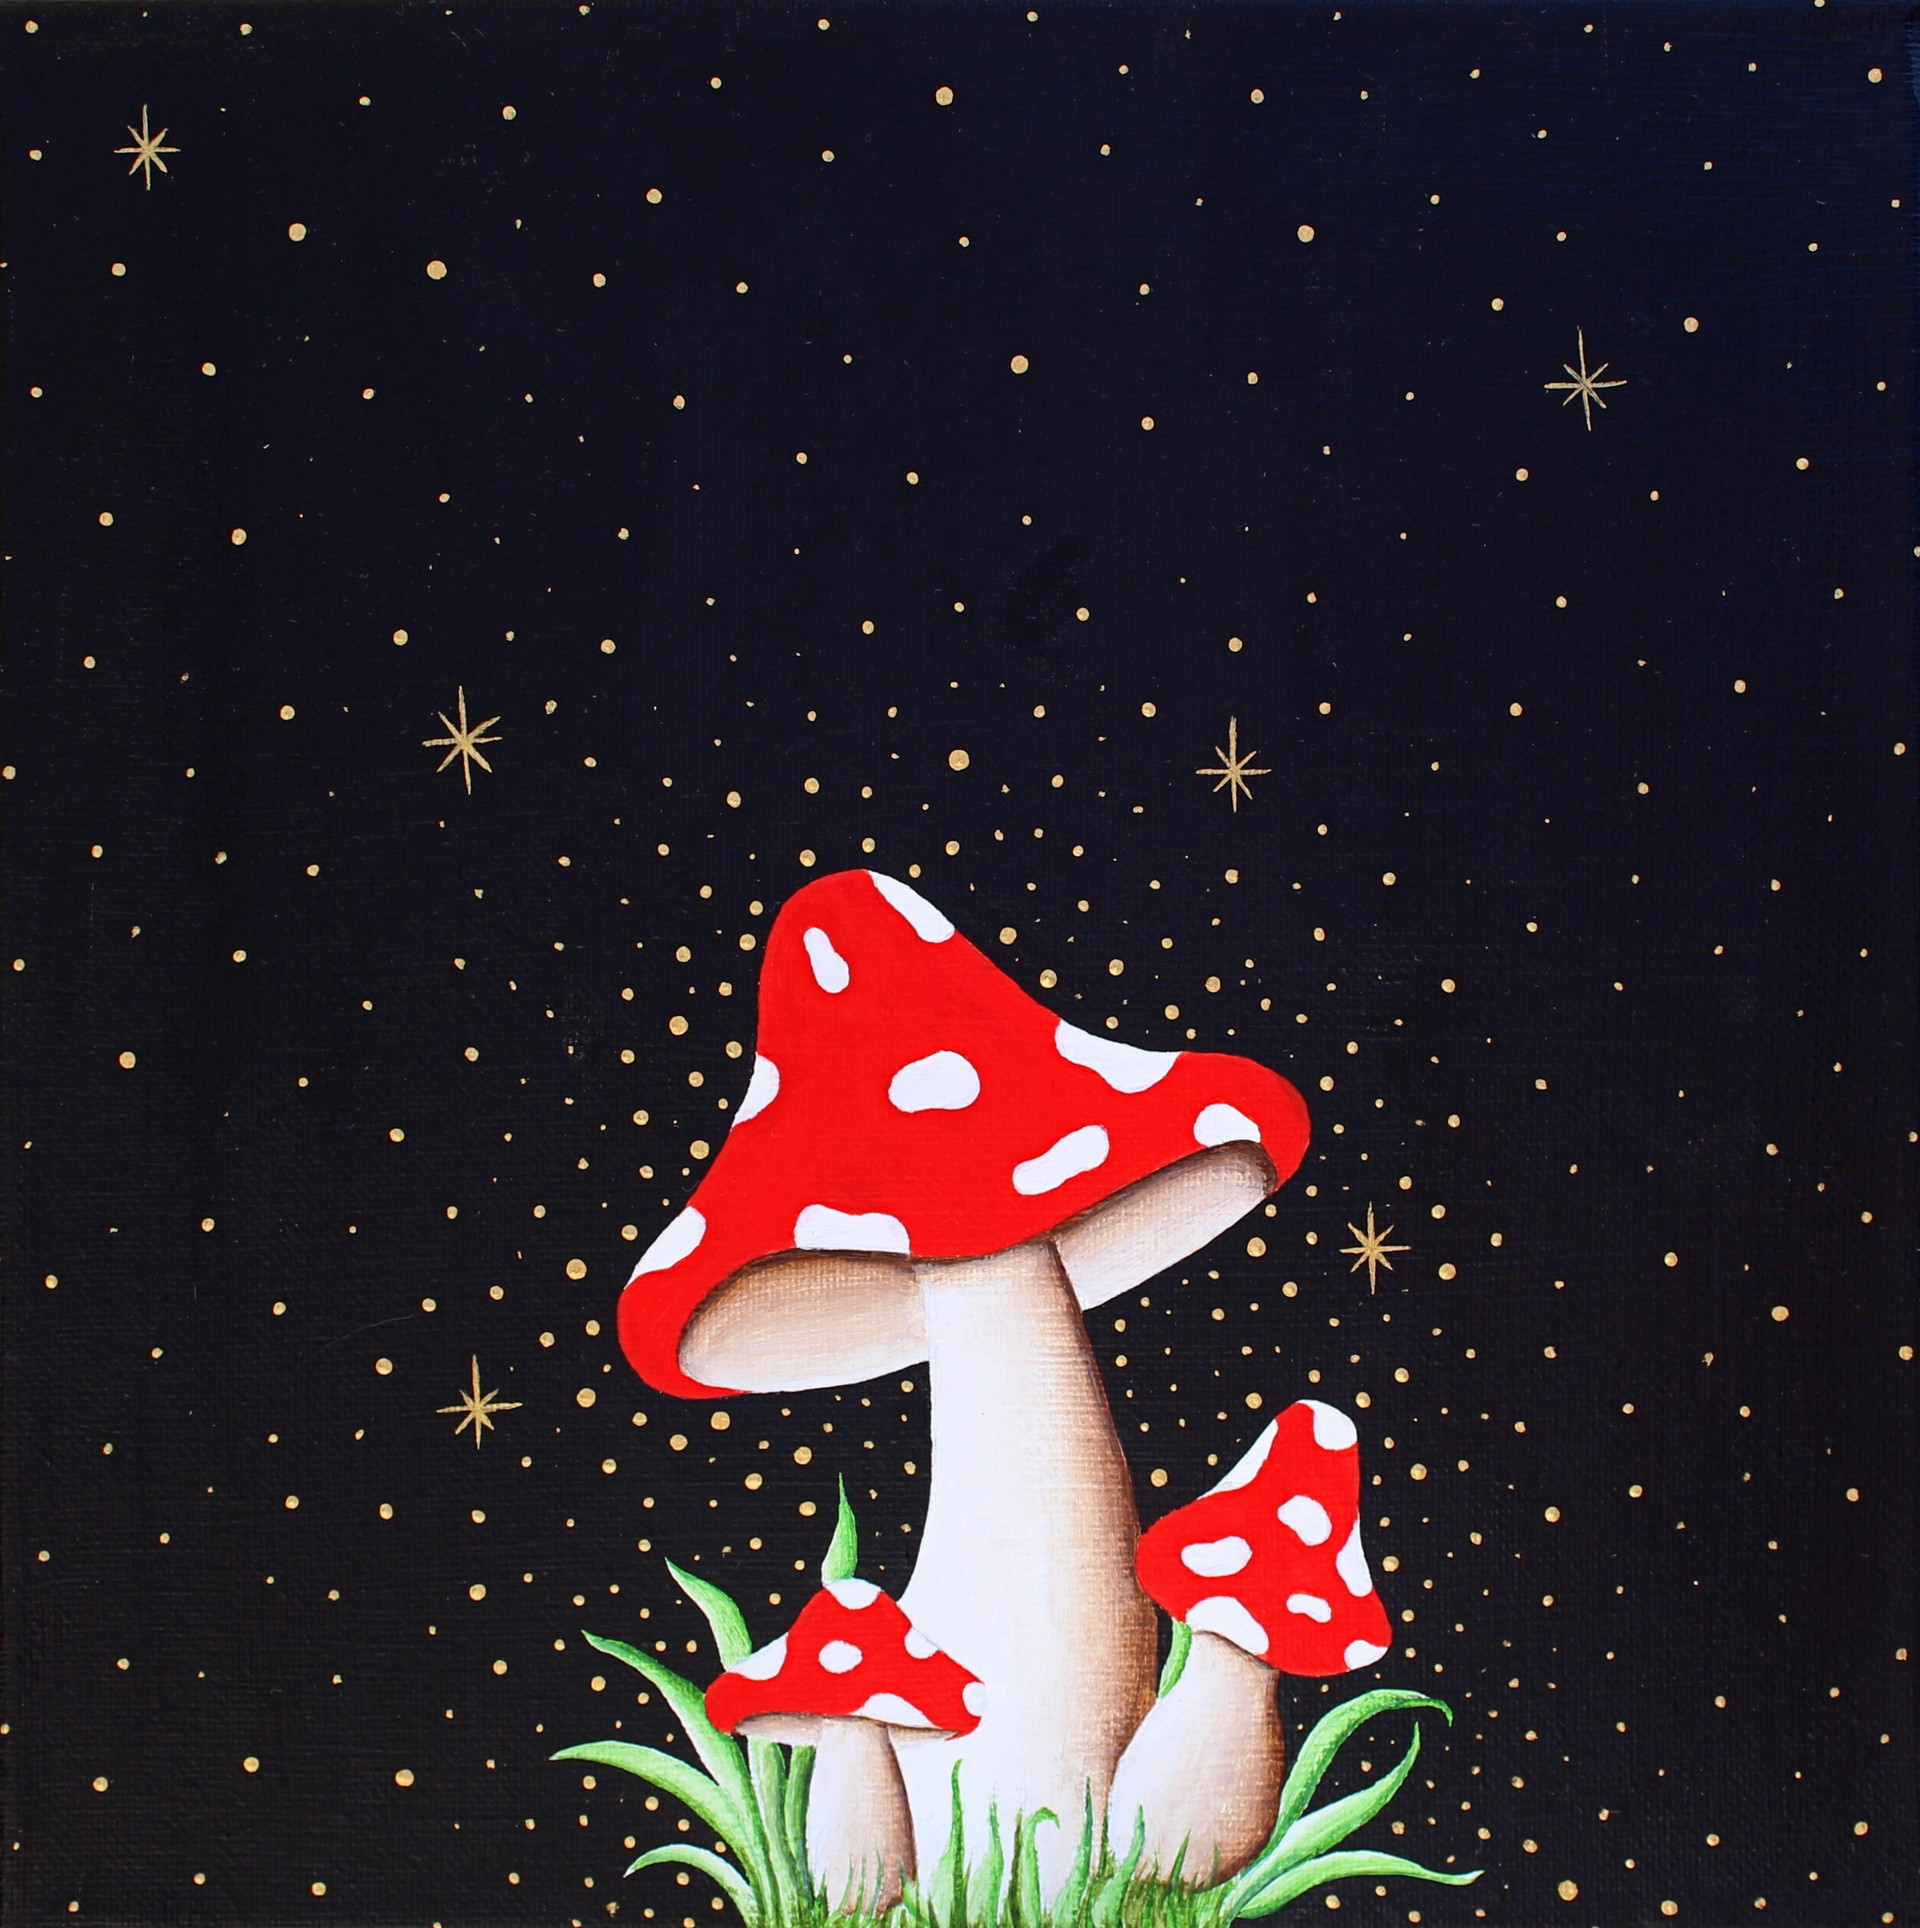 Space Shrooms